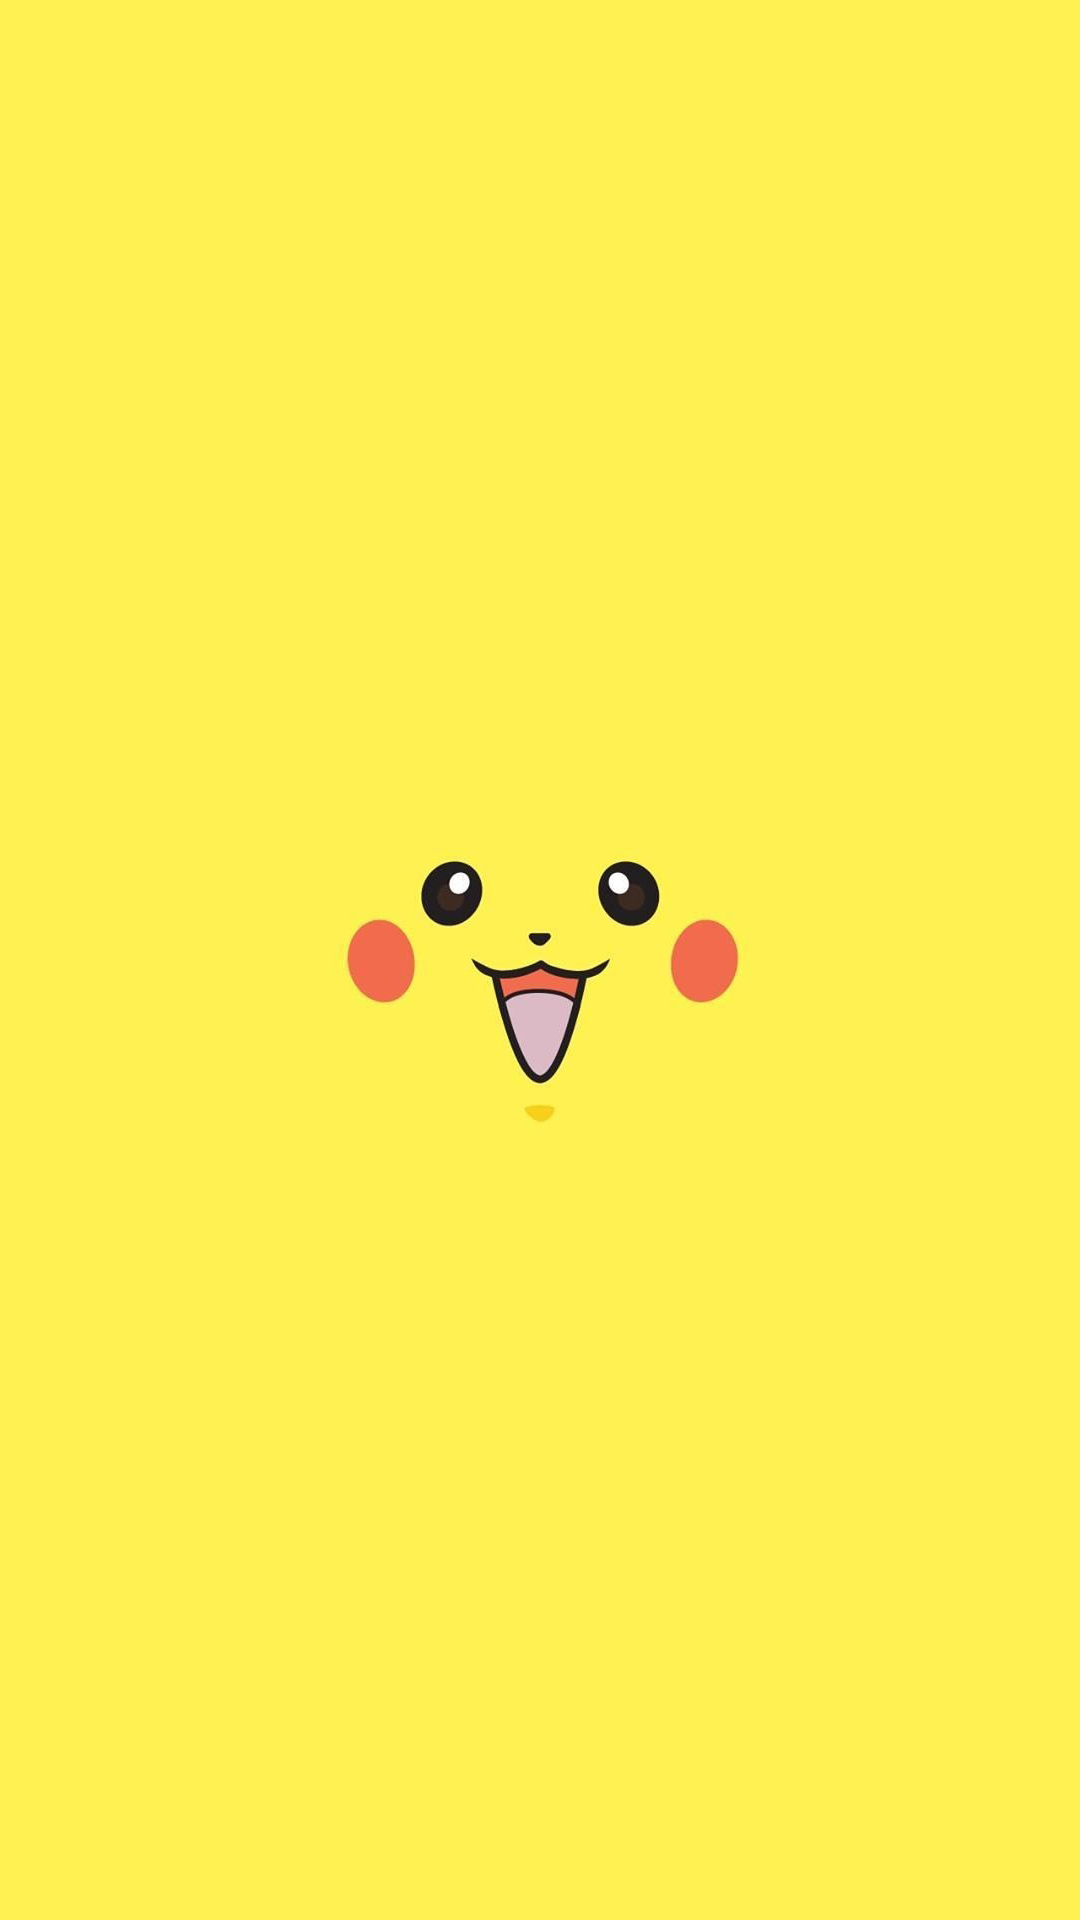 pikachu-pokemon-go-character-minimal-android-wallpaper